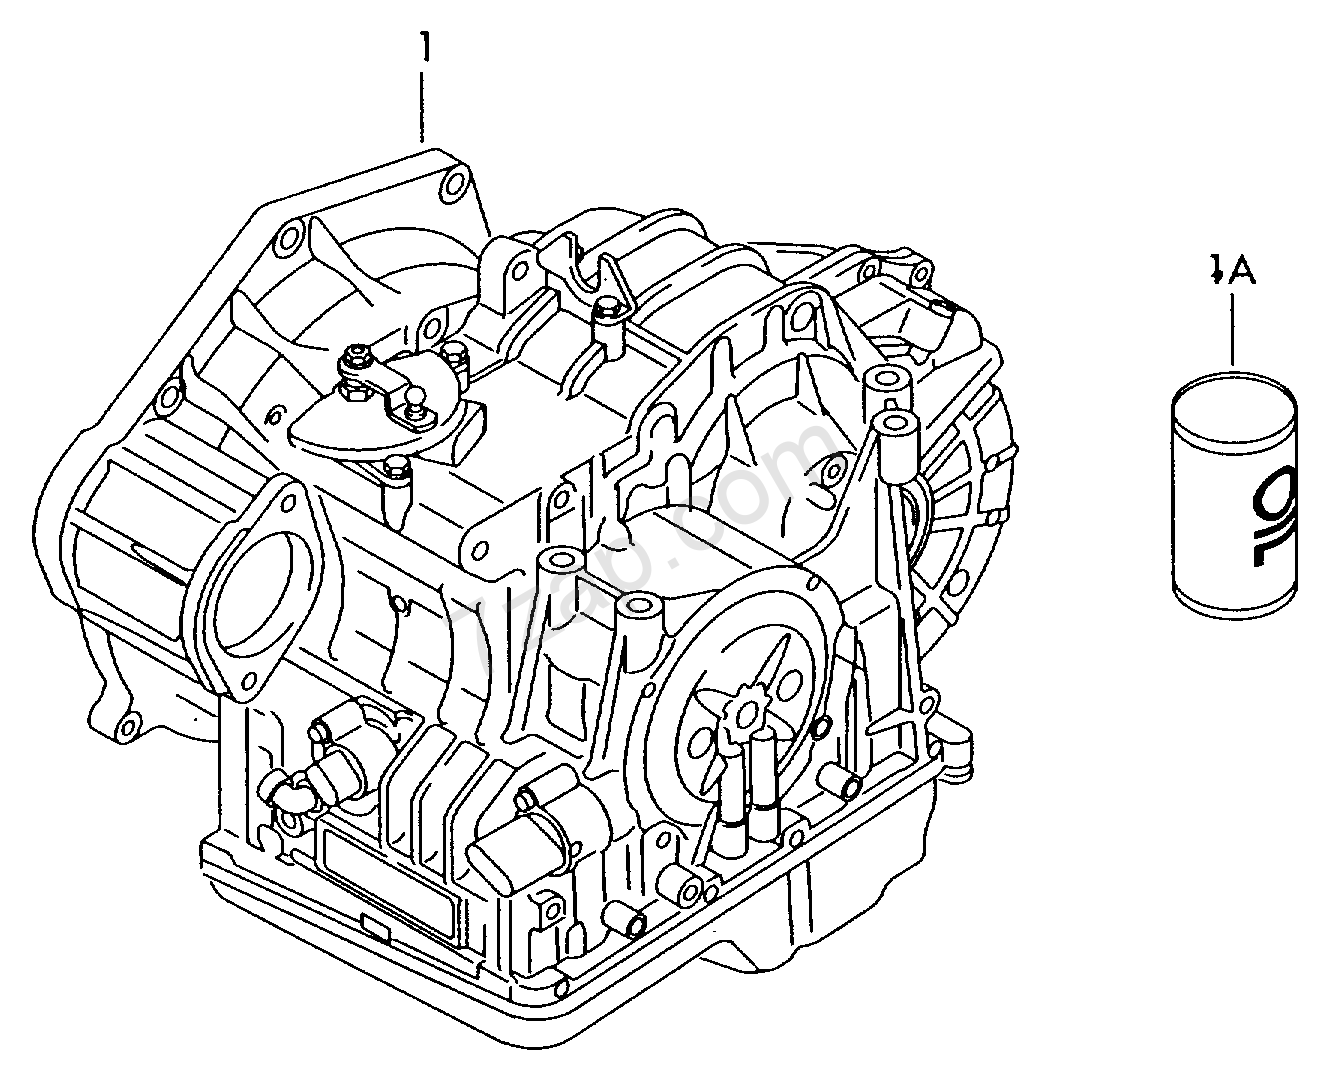 Audi A3 6 Speed Gearbox